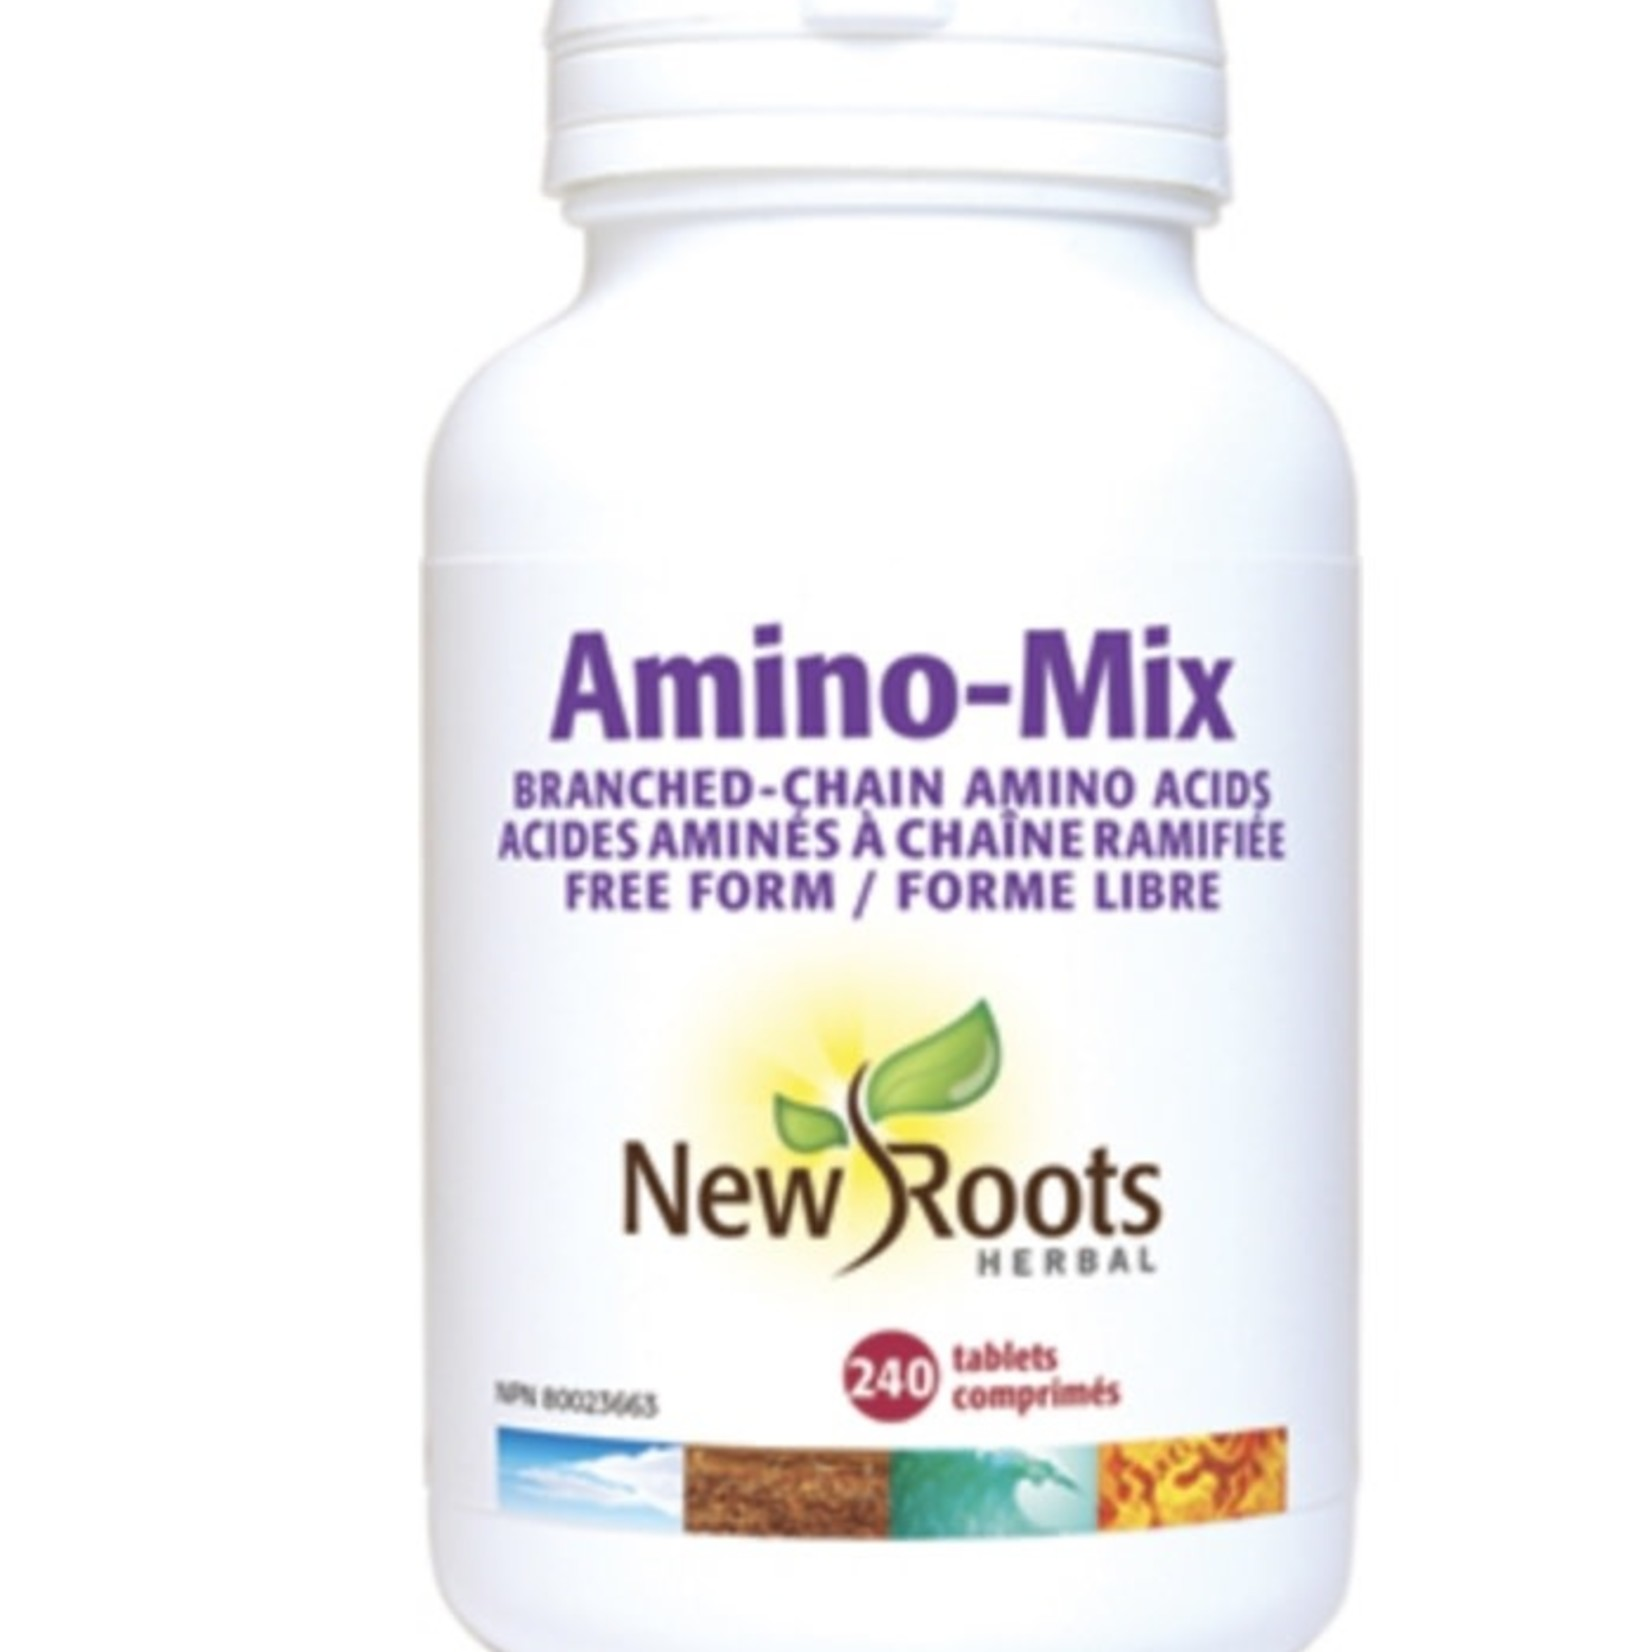 New Roots New Roots Amino-Mix 240 tabs